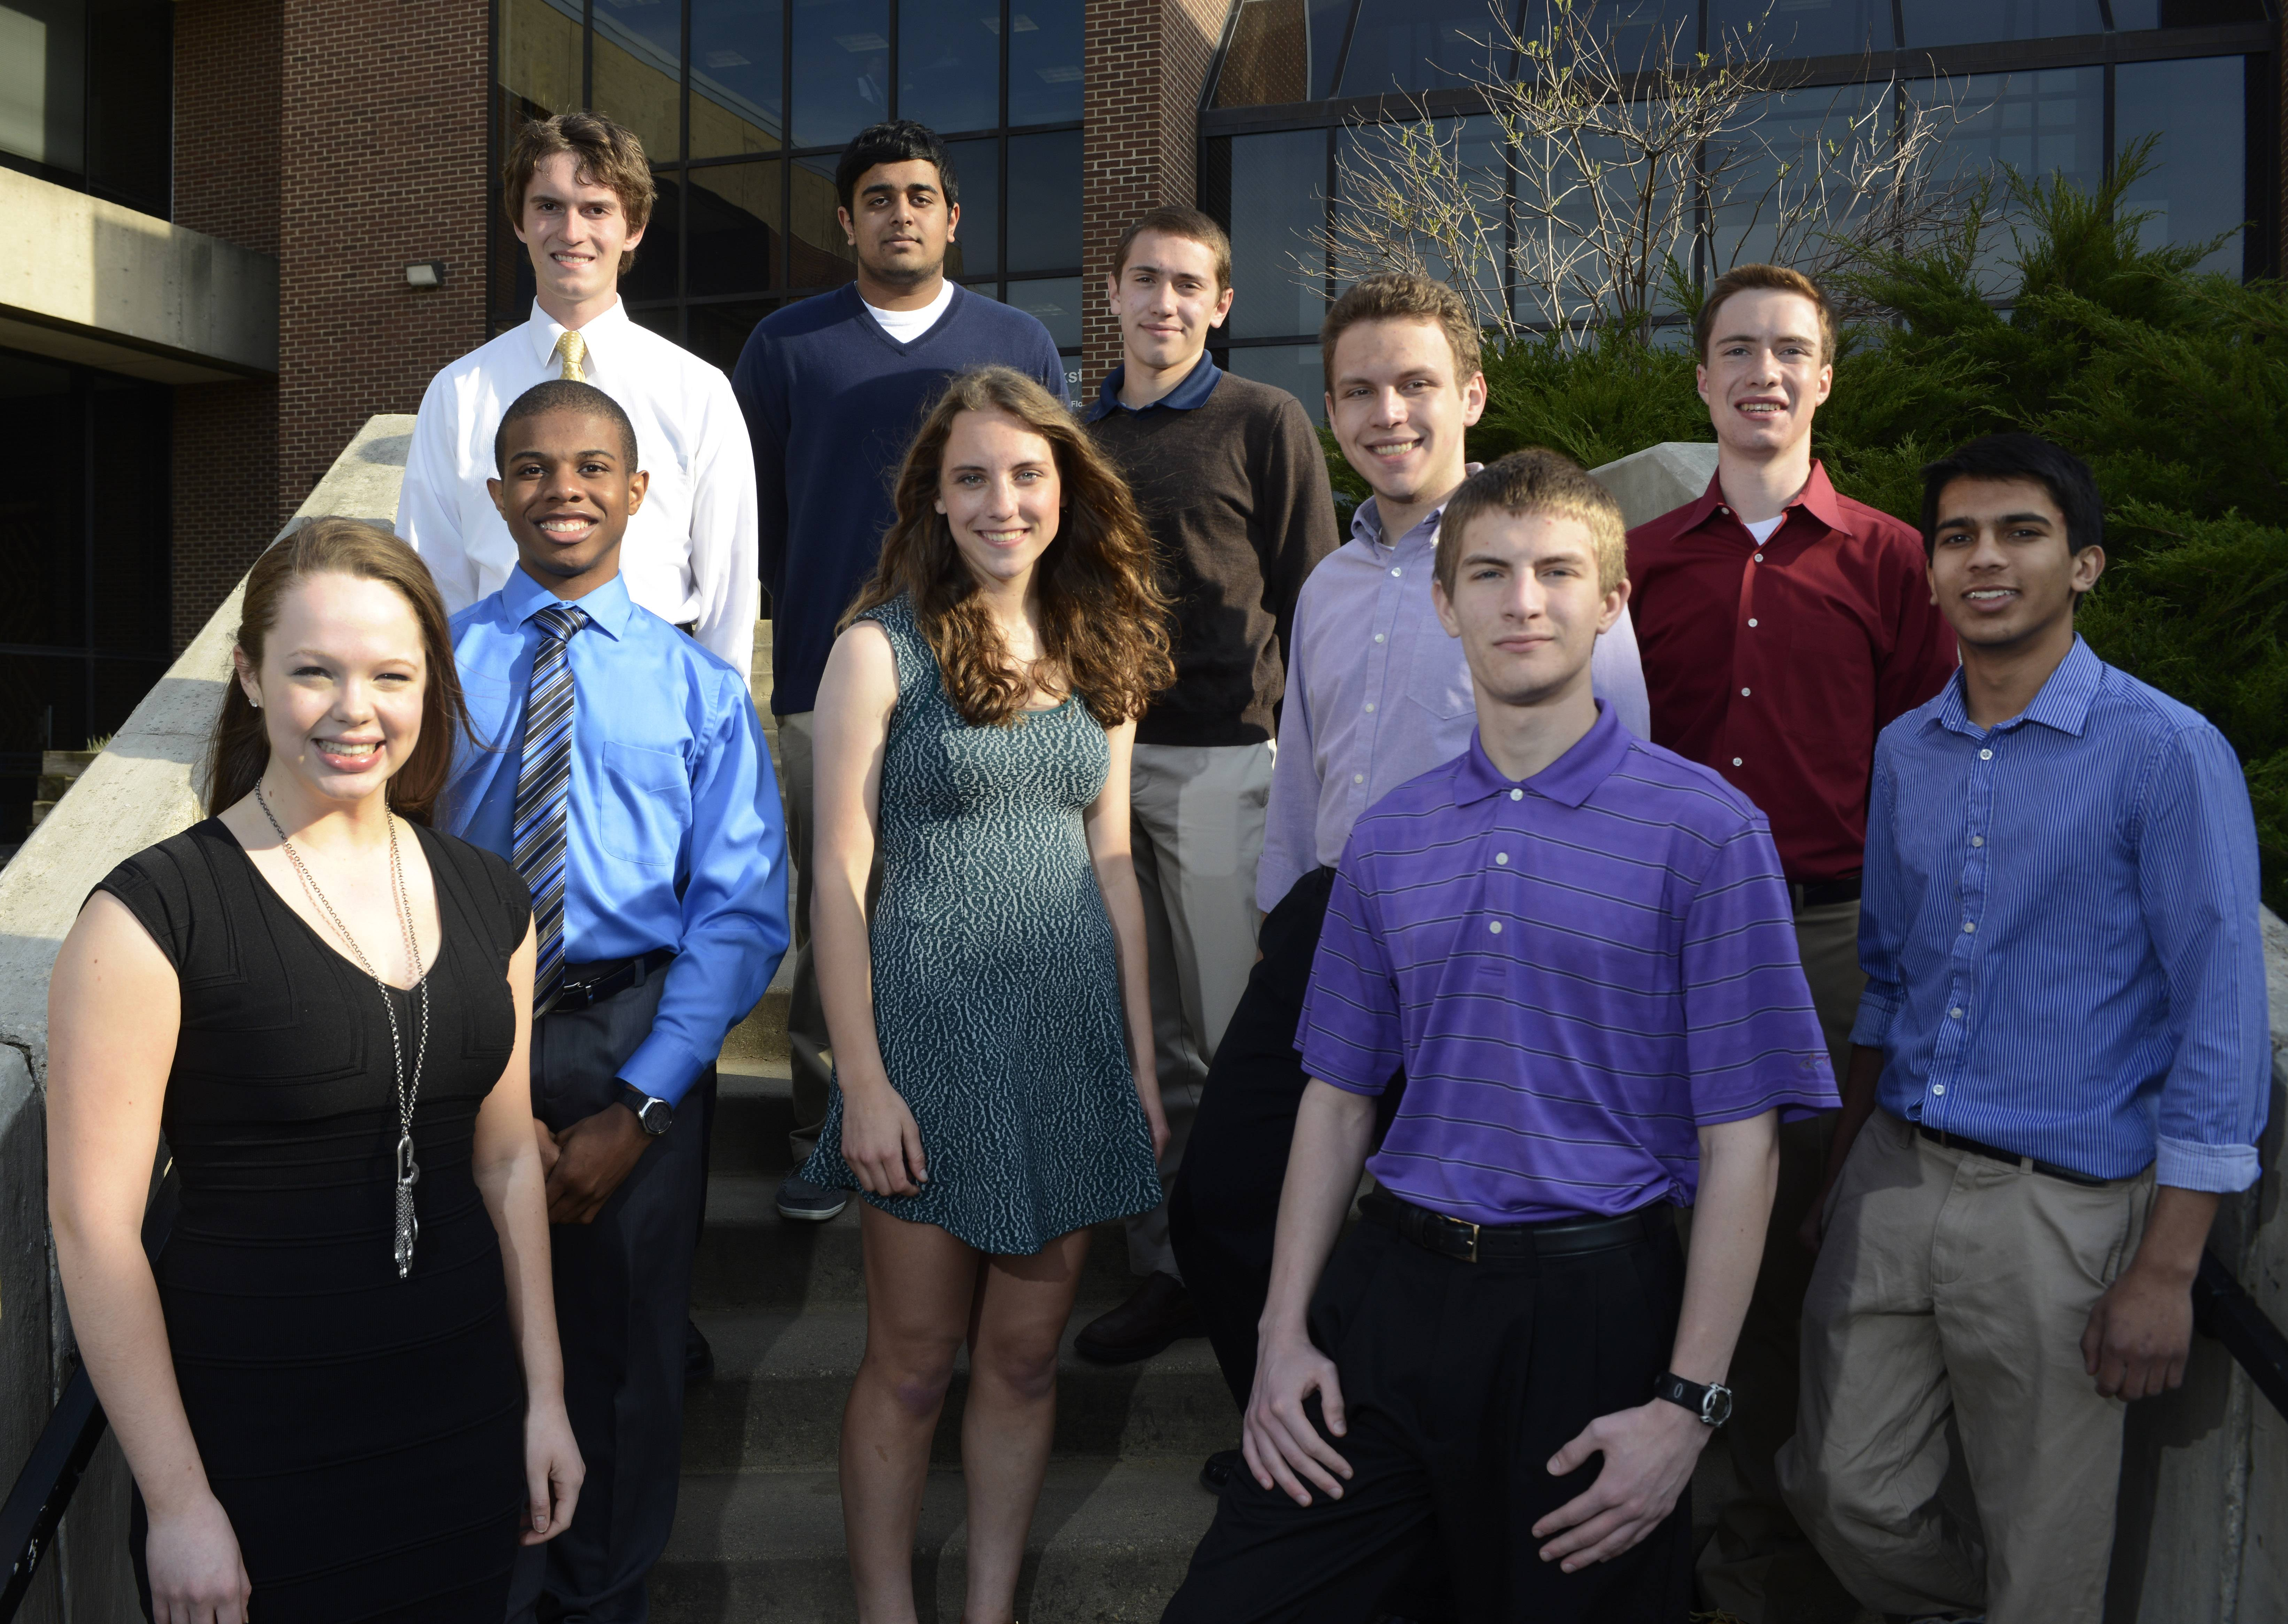 The 2014 Northwest Suburban Academic Team gathers at Harper College. Front row, from left: Emma Heckelsmiller, Palatine High School; Trent Cwiok, Elk Grove High School; and Sohum Chokshi, Conant. Middle row, from left: Paul Lewis, St. Viator; Mary Collins, Rolling Meadows High School; Robert Andrews, Fremd; and Tyler Harris, St. Viator. Back row, from left: Peter Kotecki, Buffalo Grove High School; Milan Patel, Hoffman Estates High School and Matthew Stadnicki, Hersey.